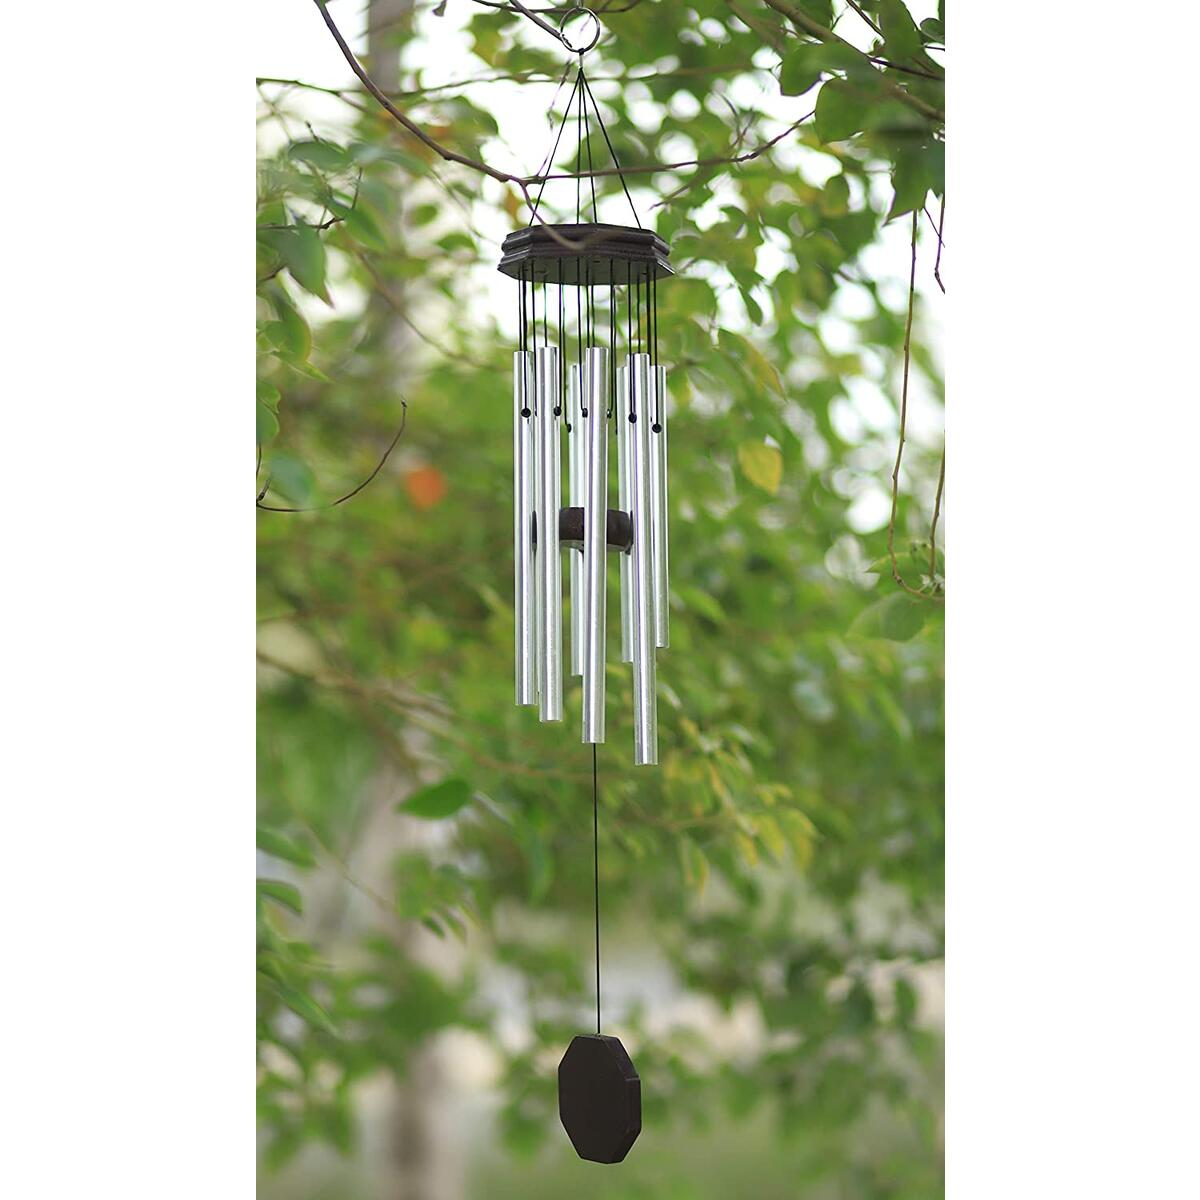 Ilaws Fairy Tale Wind Chimes 26 Inch in Total Length, Amazing Melody Created by Well-Constructed and Unique Design with 8 Tubes Aluminum for Garden, Yard, Patio, Home Decoration and Gift.